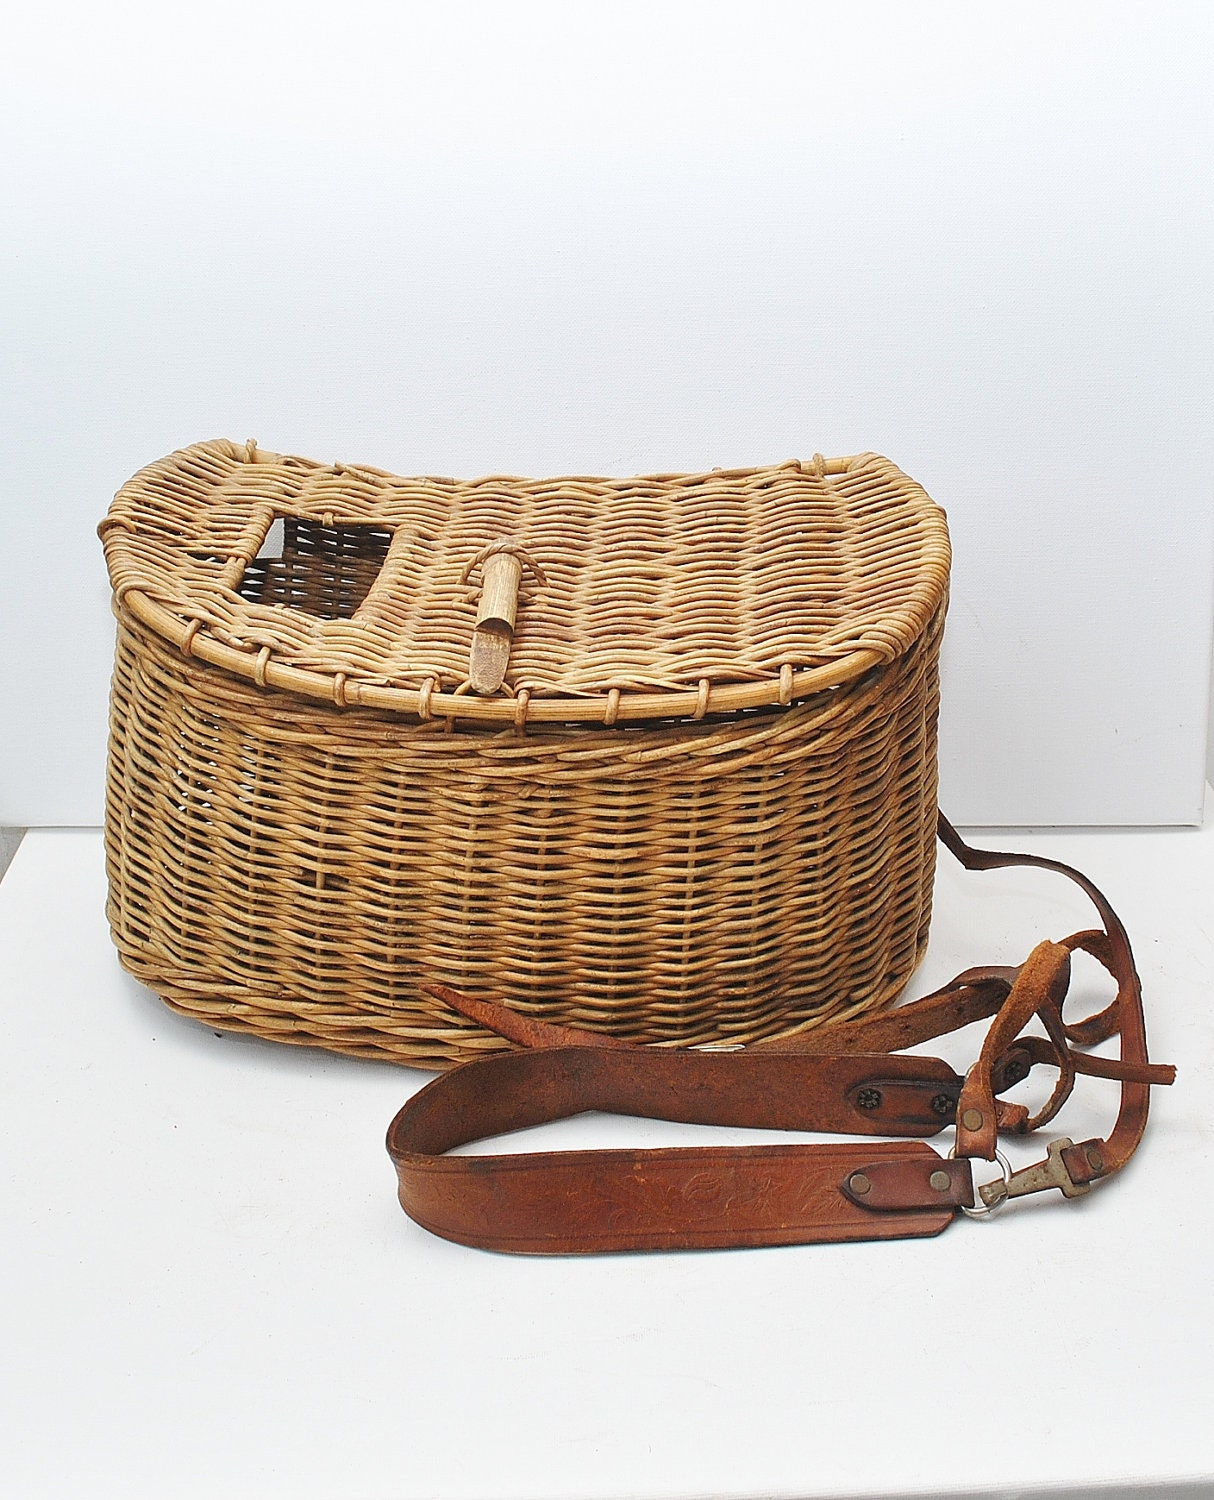 antique fly fishing creel basket 1940s antique sporting